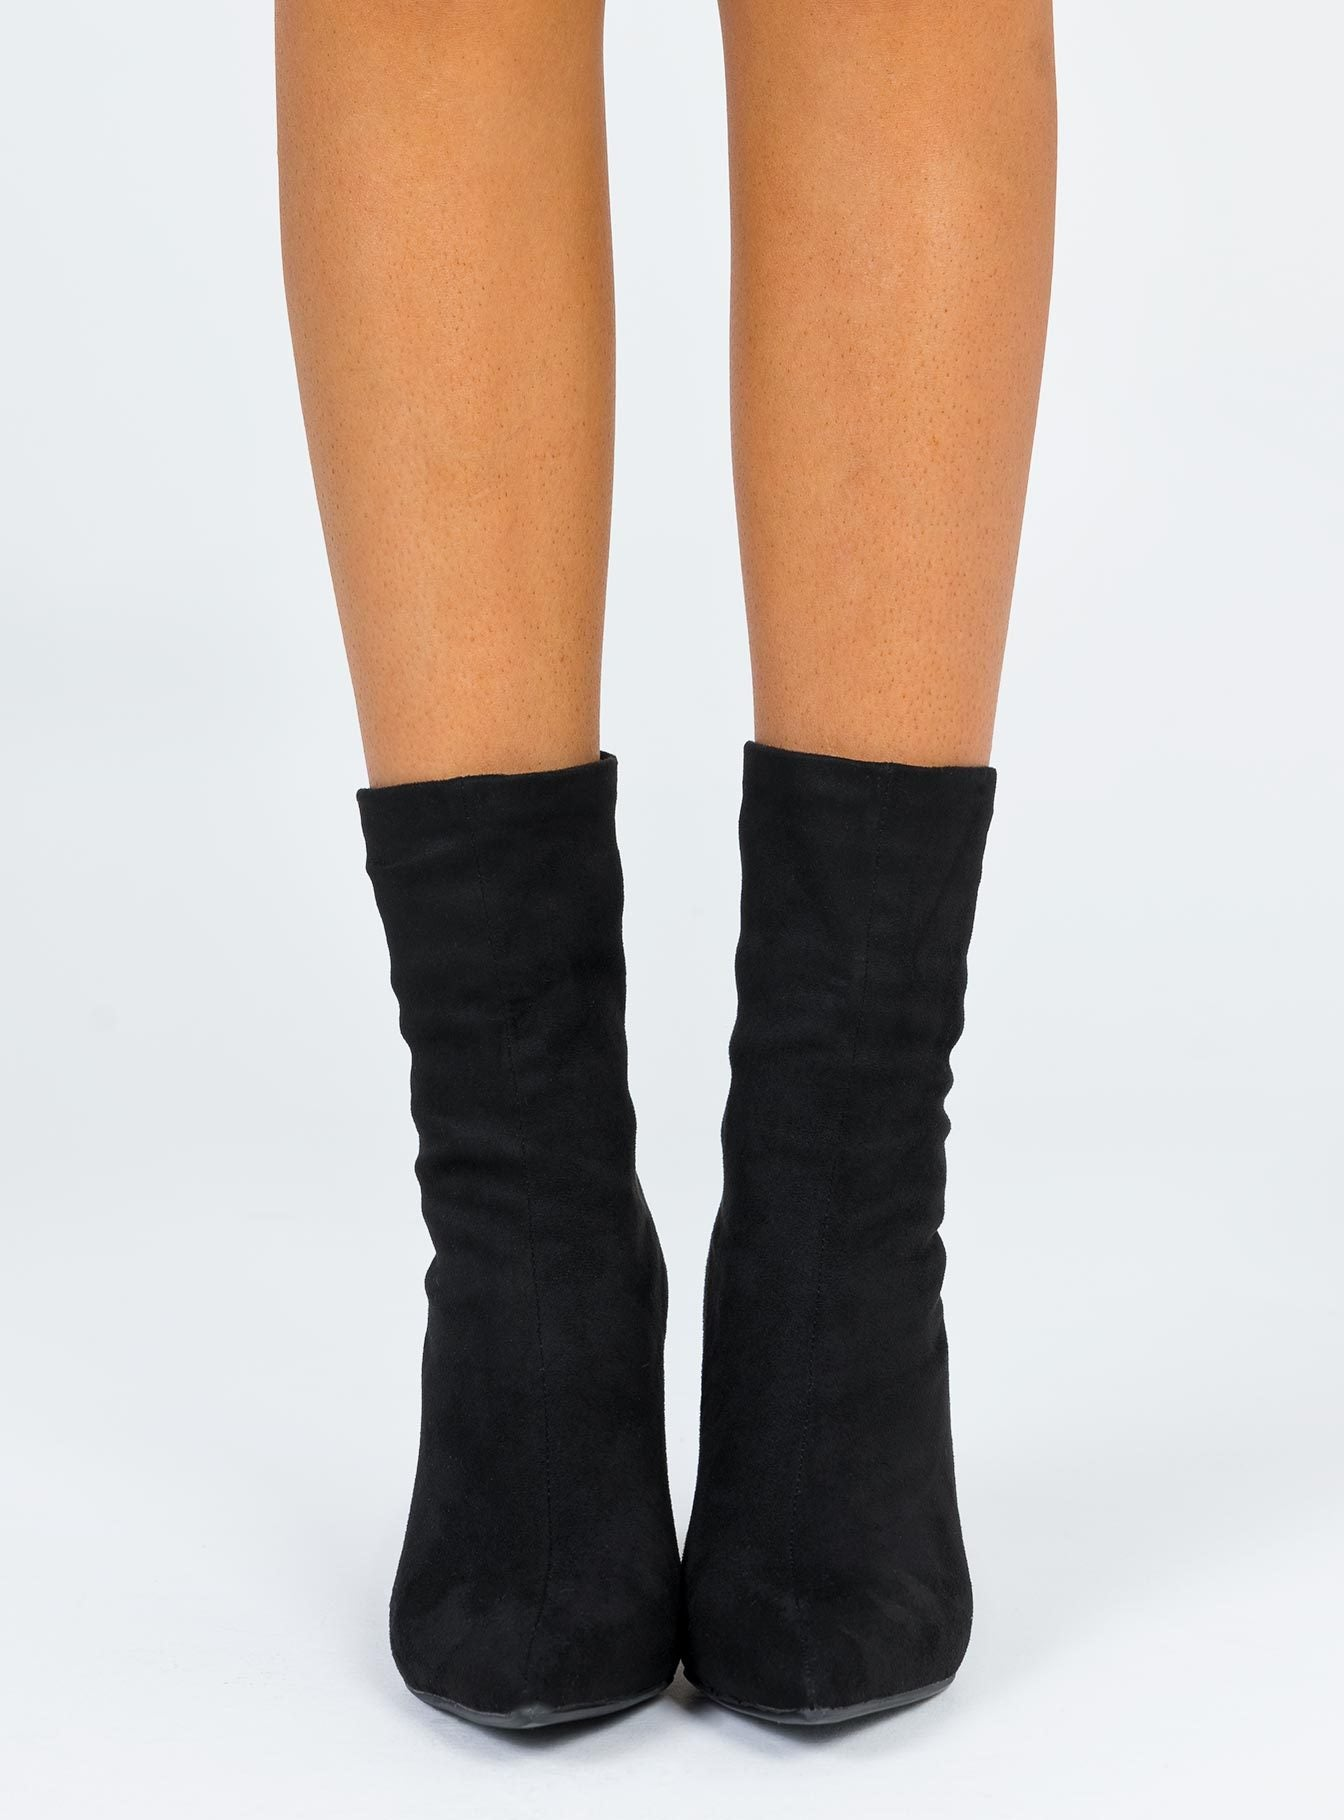 Therapy Bowie Boots Faux Suede